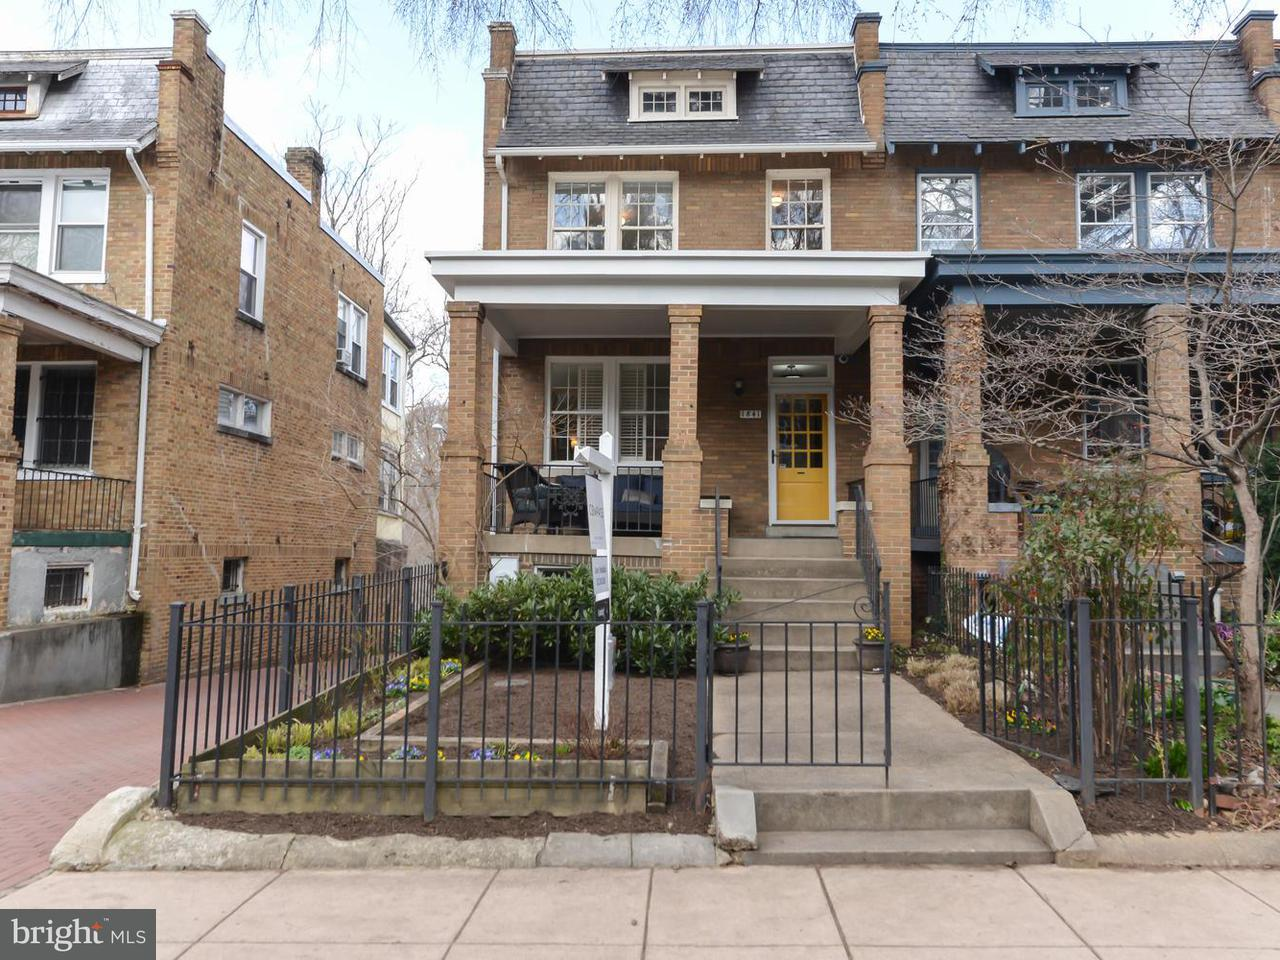 Townhouse for Sale at 1841 Ingleside Ter Nw 1841 Ingleside Ter Nw Washington, District Of Columbia 20010 United States